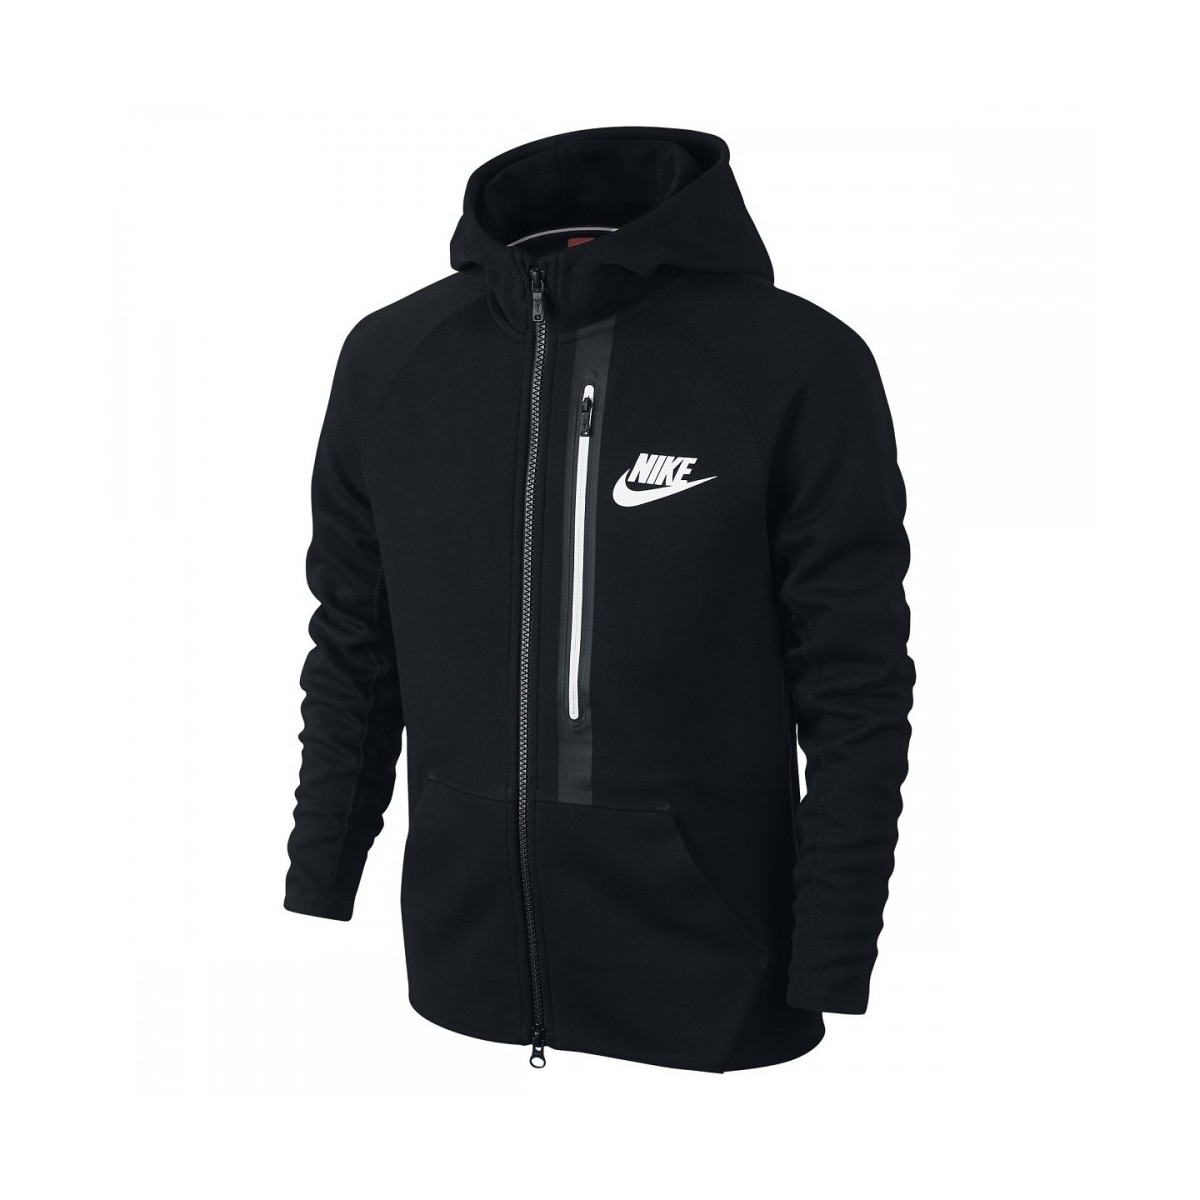 classic styles best authentic save up to 80% Sweat nike Tech Fleece Full-Zip Hoodie Junior